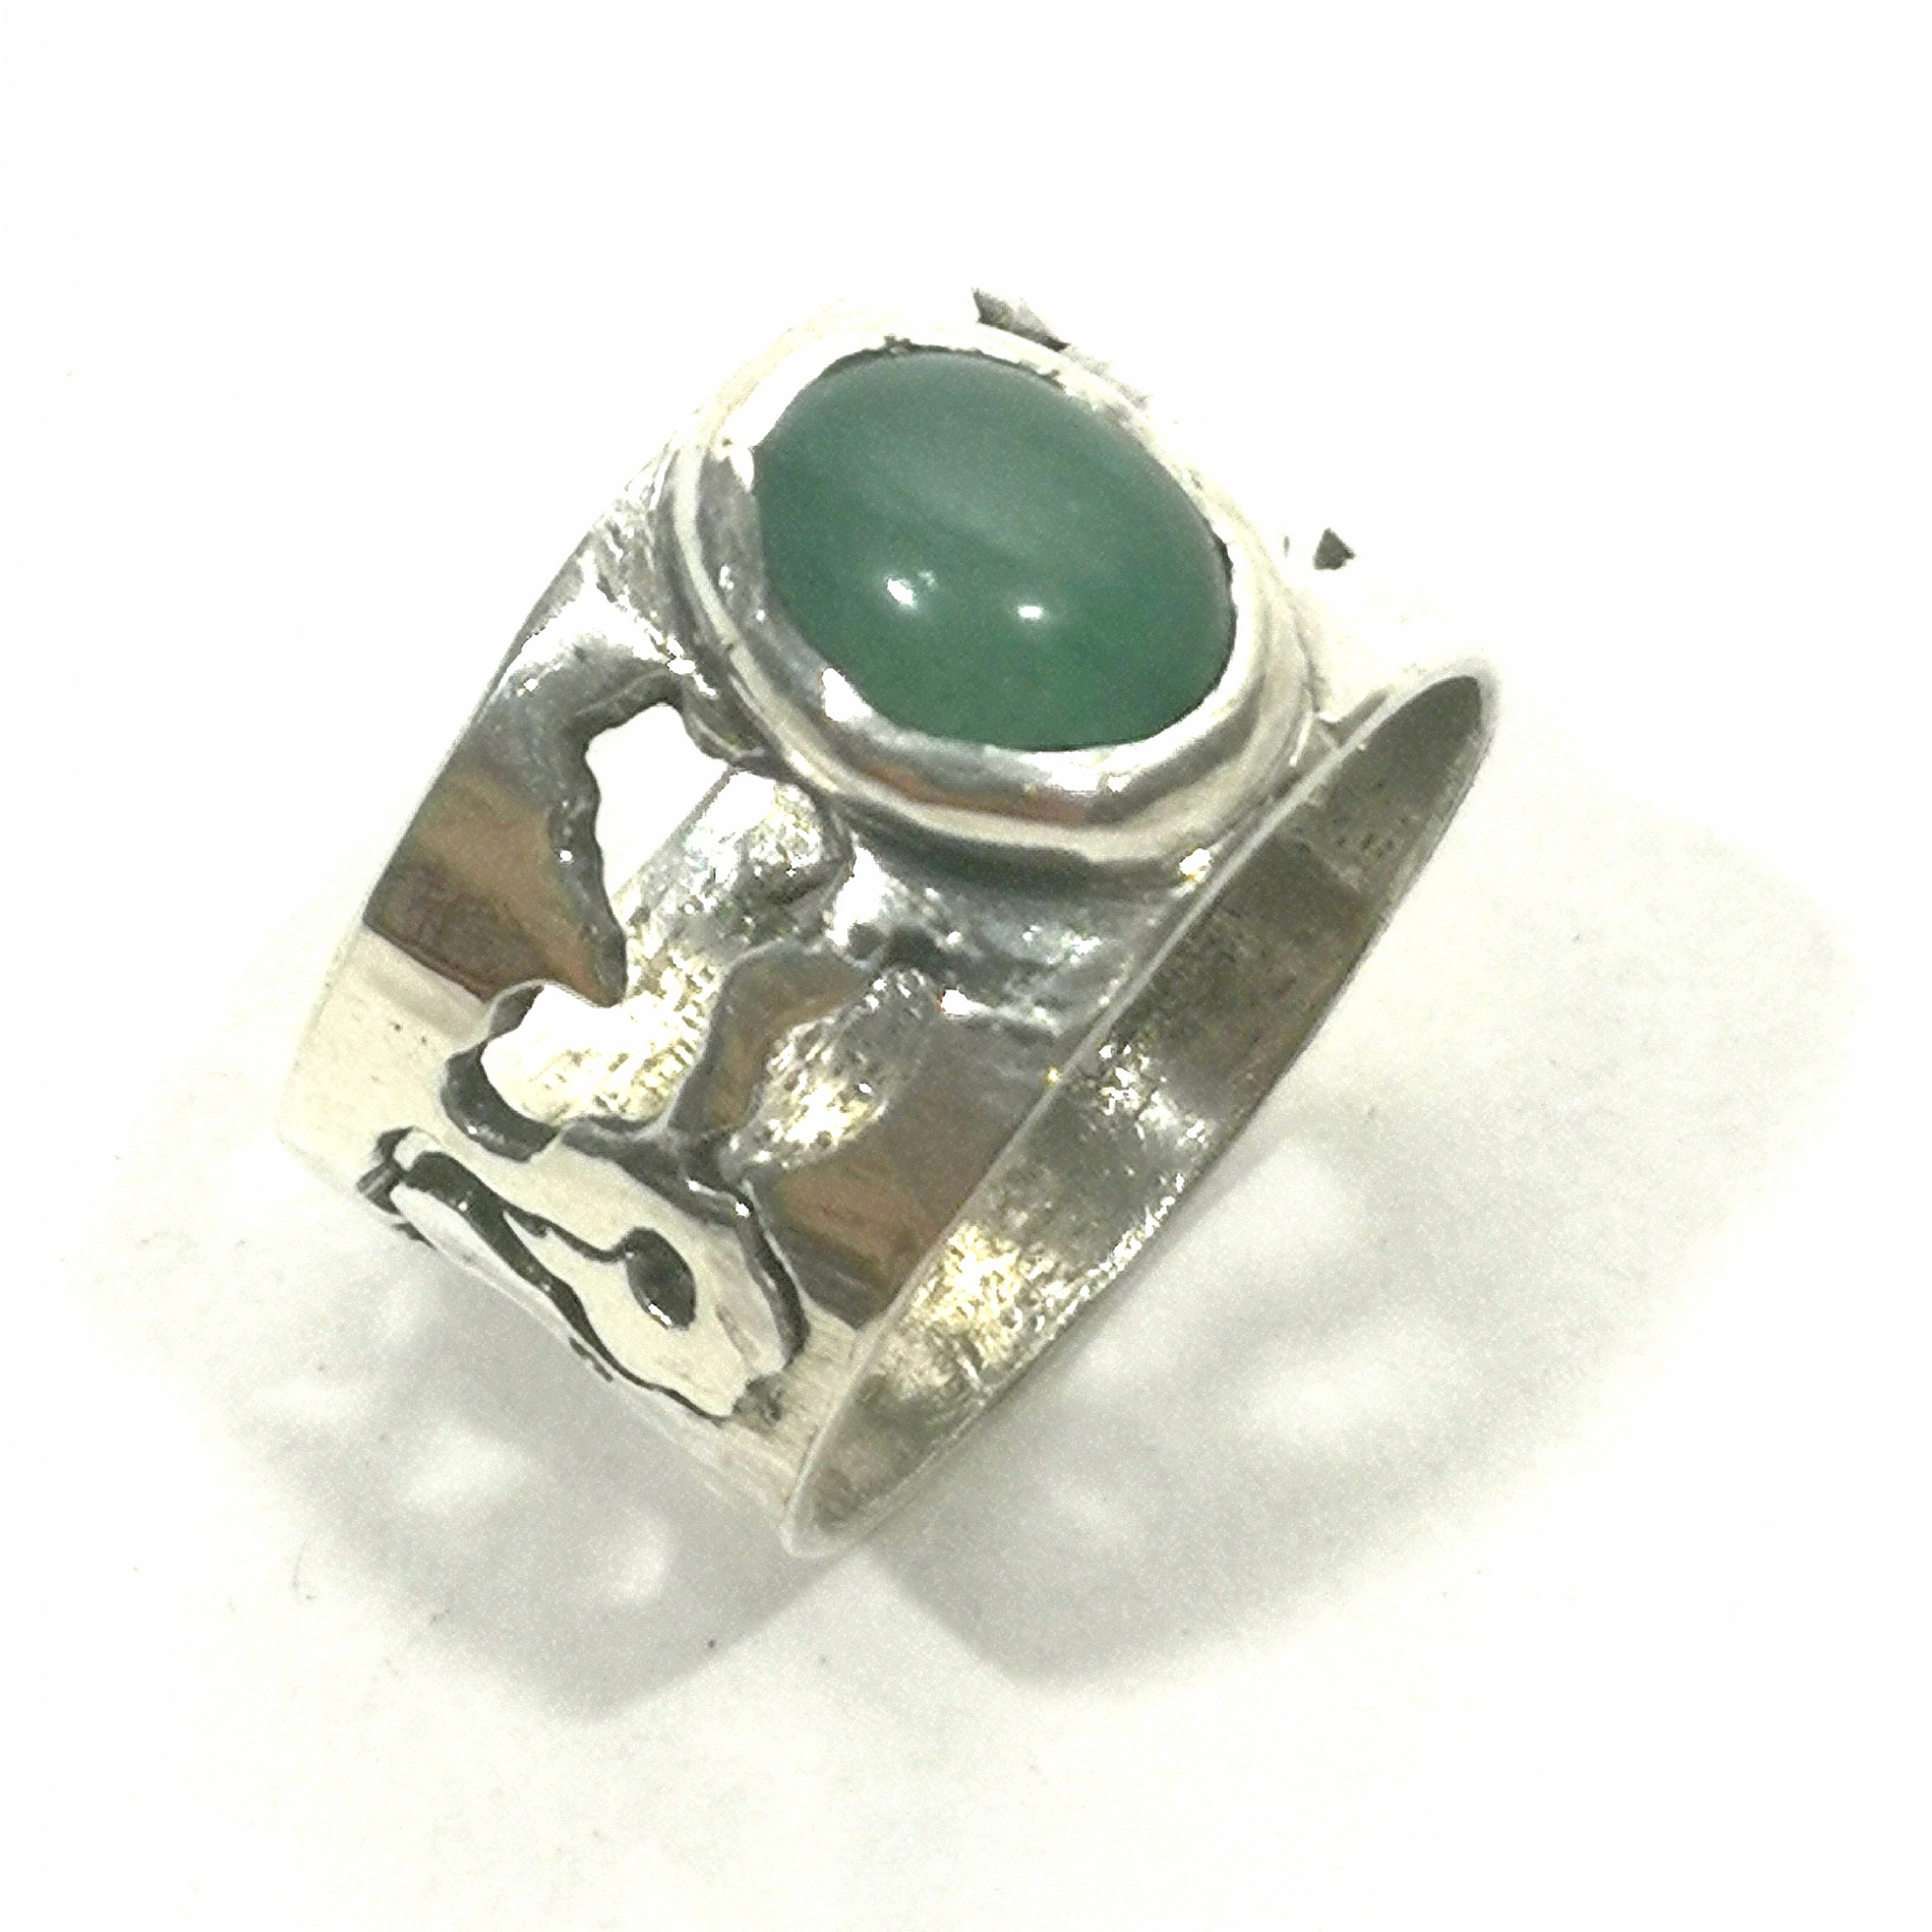 modernist sterling silver band ring